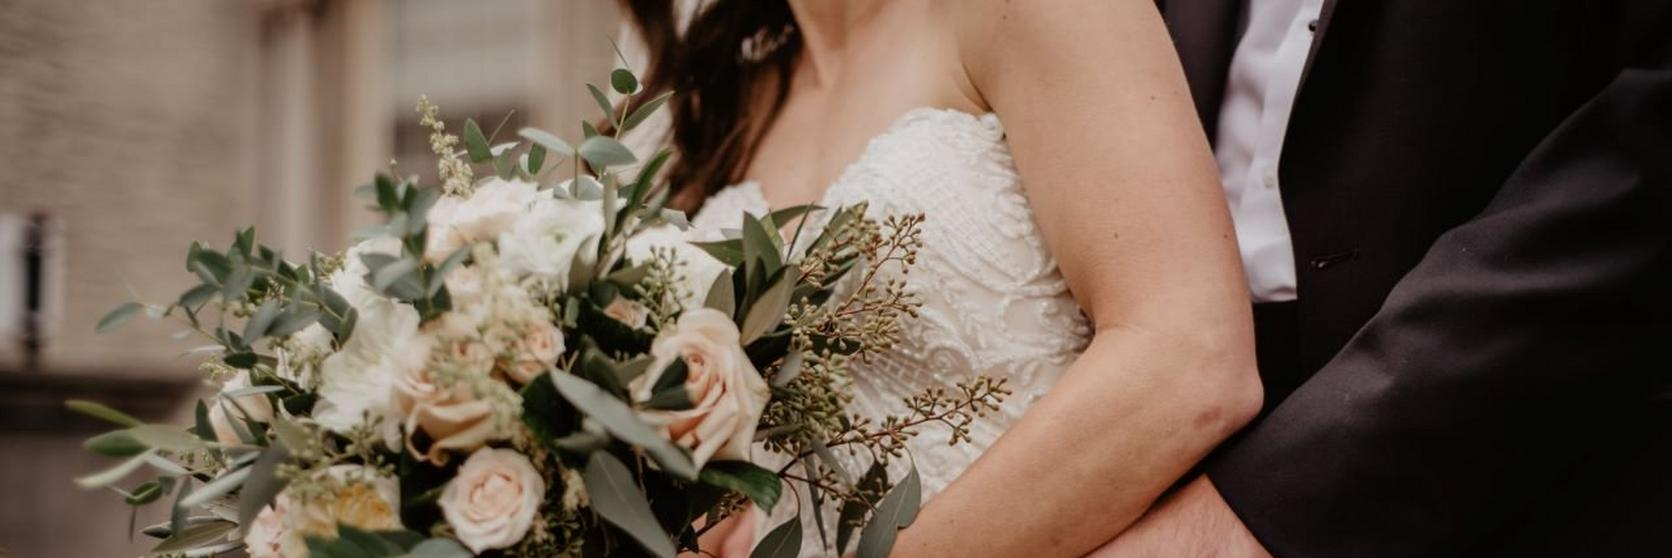 Canva - Woman Wearing White Wedding Gown